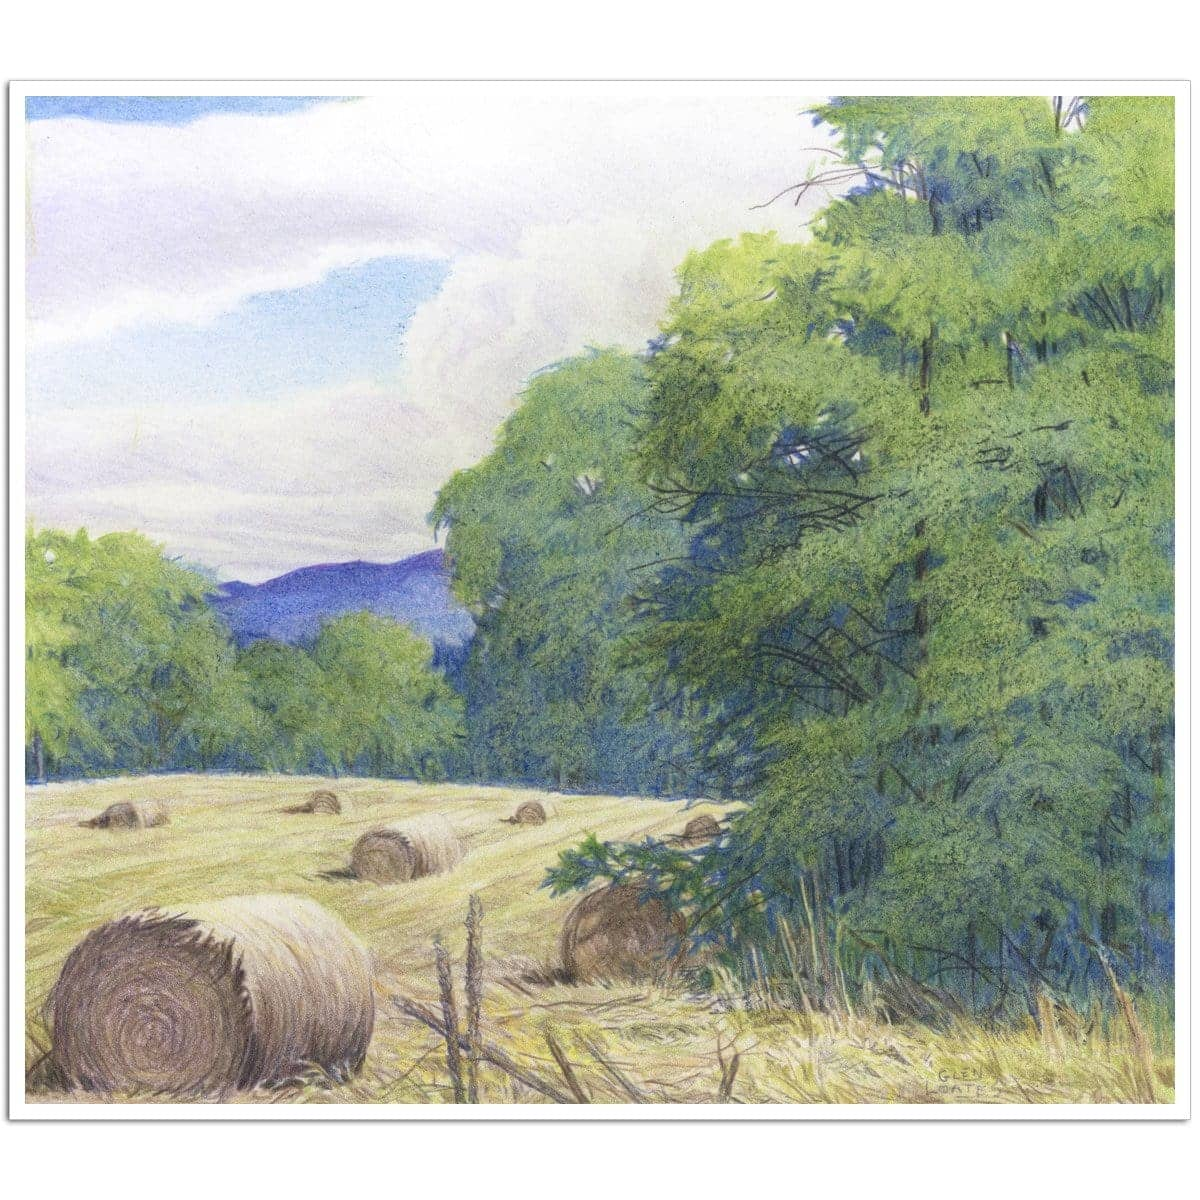 Purple Hills - Art Print by Glen Loates from the Glen Loates Store